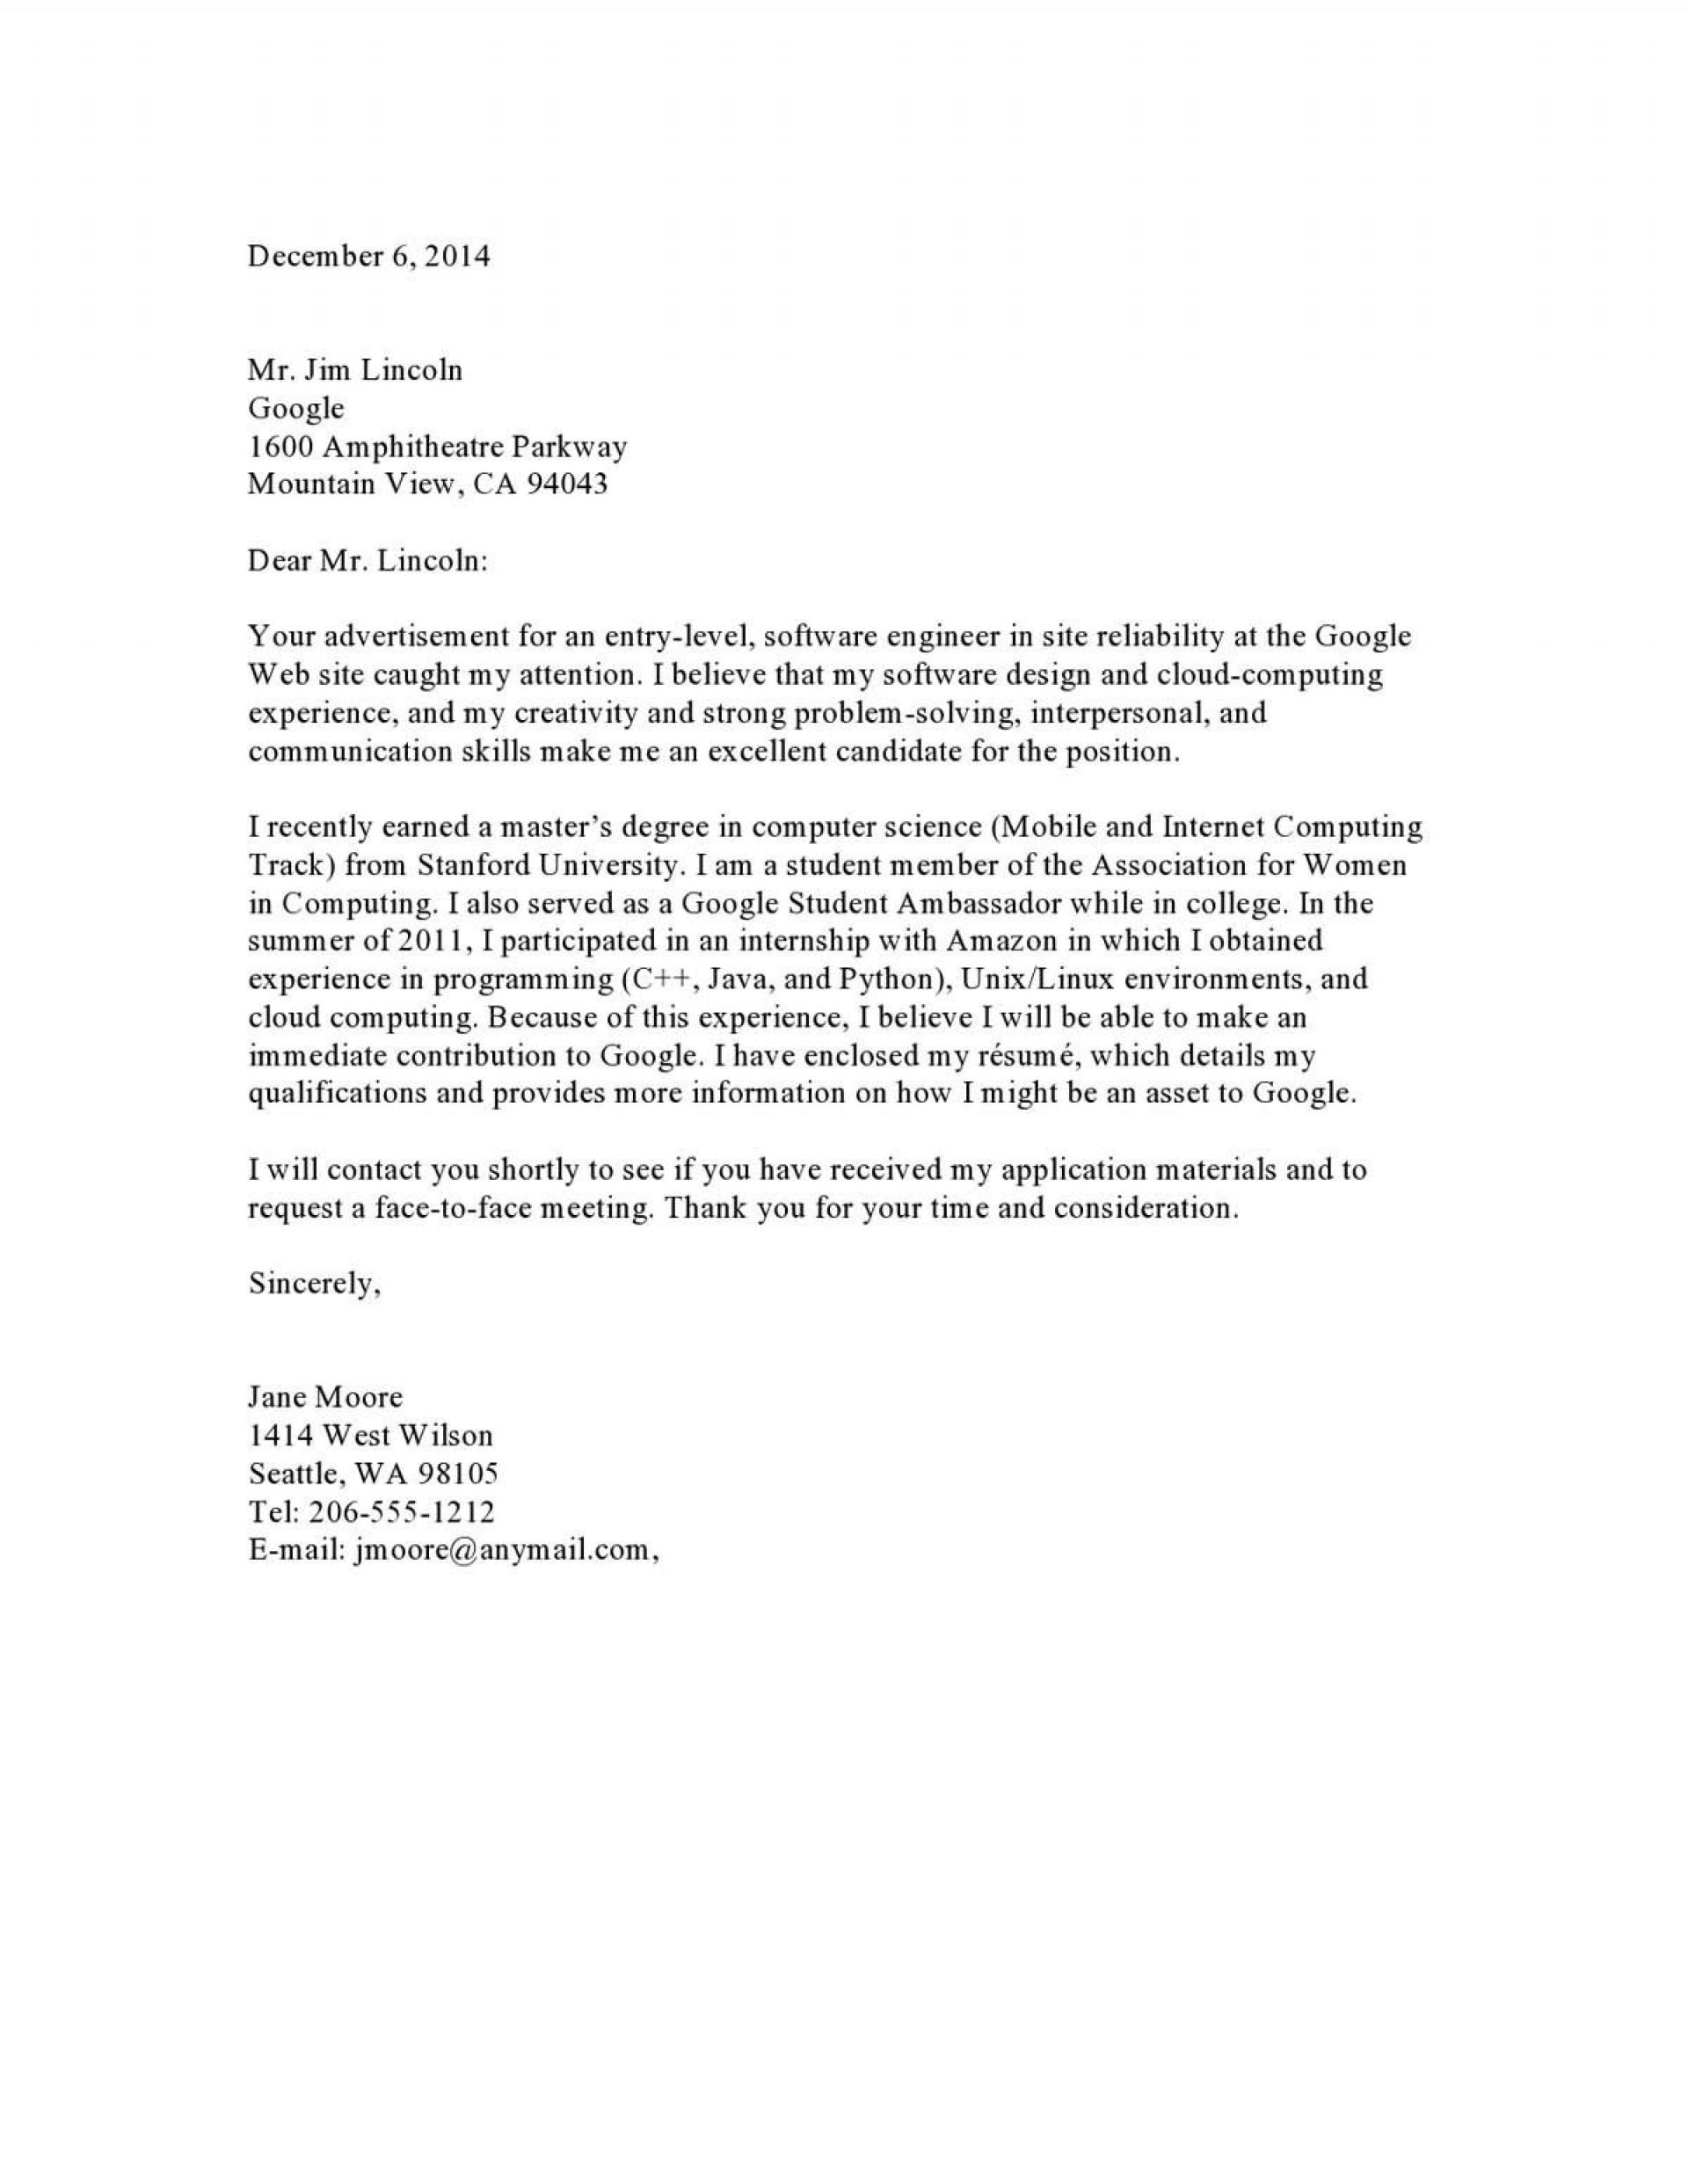 004 Rare Cover Letter Writing Sample Design  Example For Content Job Resume1920